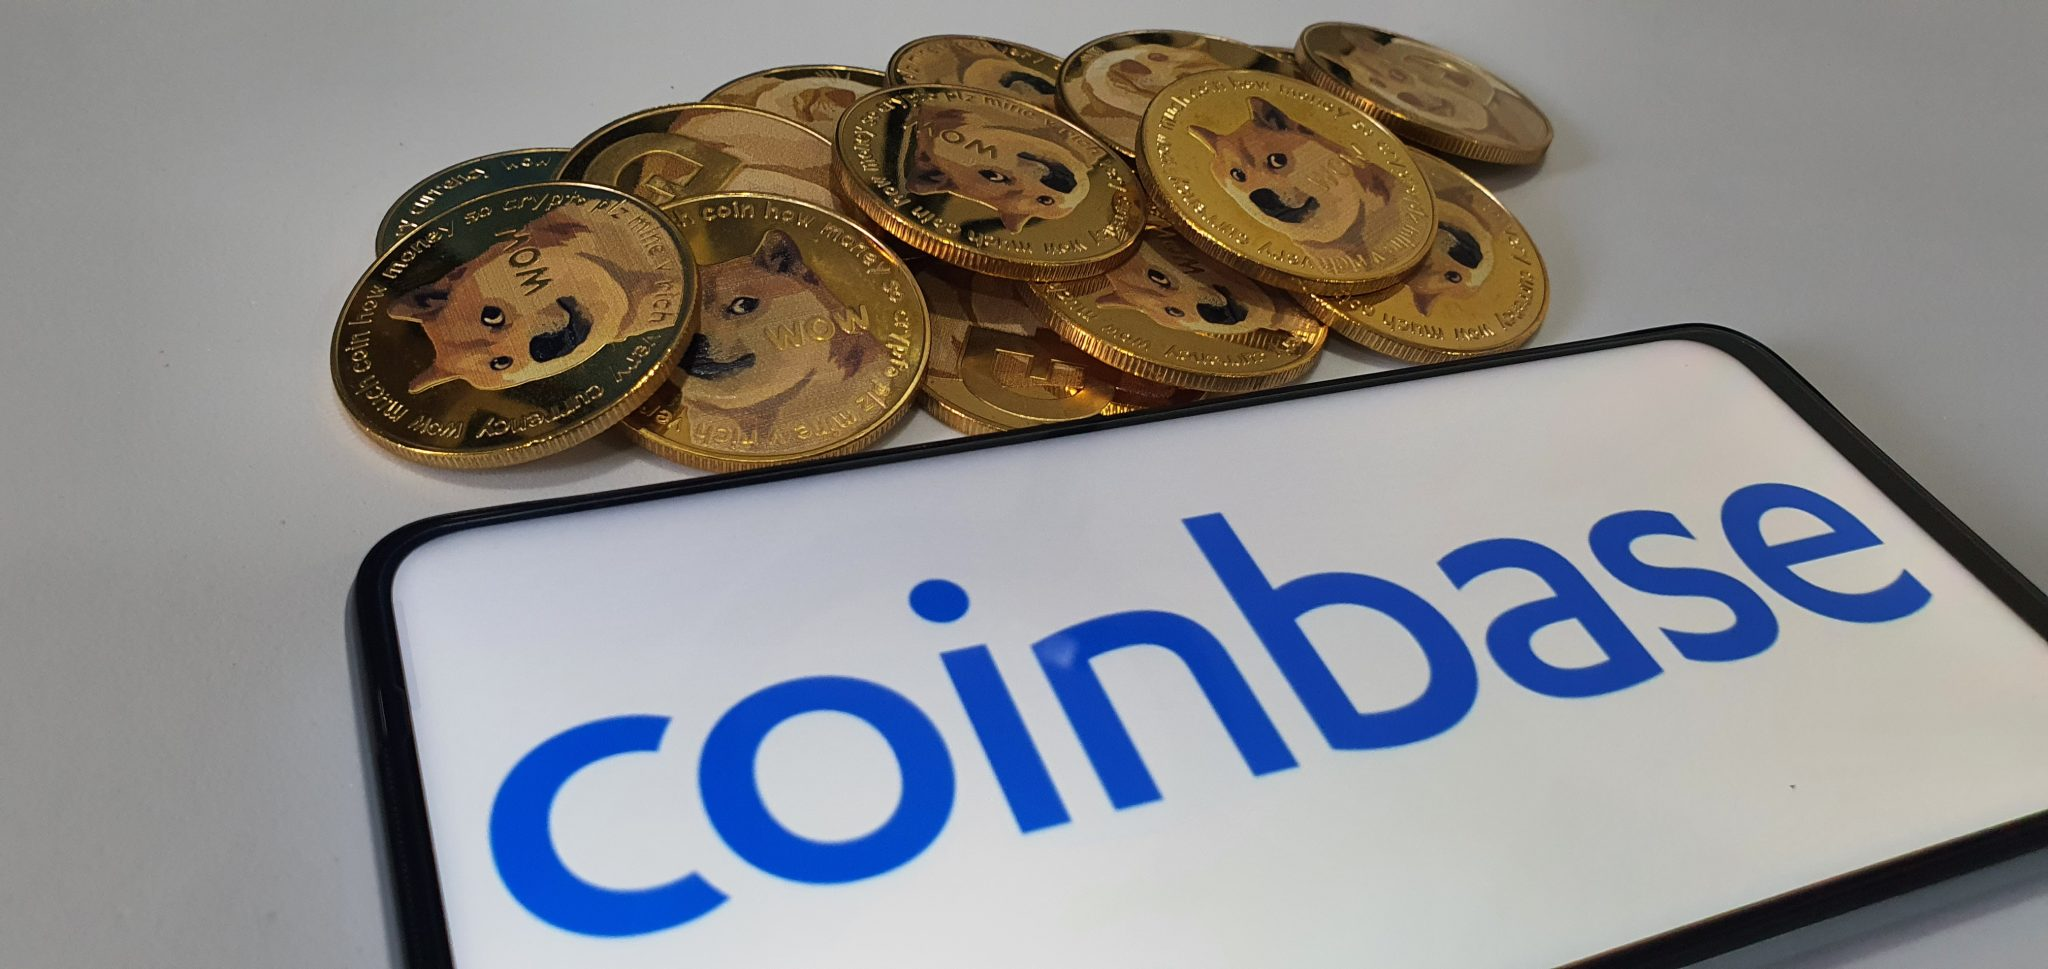 Kuching, Sarawak Malaysia - June 2, 2021: Macro view of gold color shiny coins with Dogecoin symbol and Coinbase background